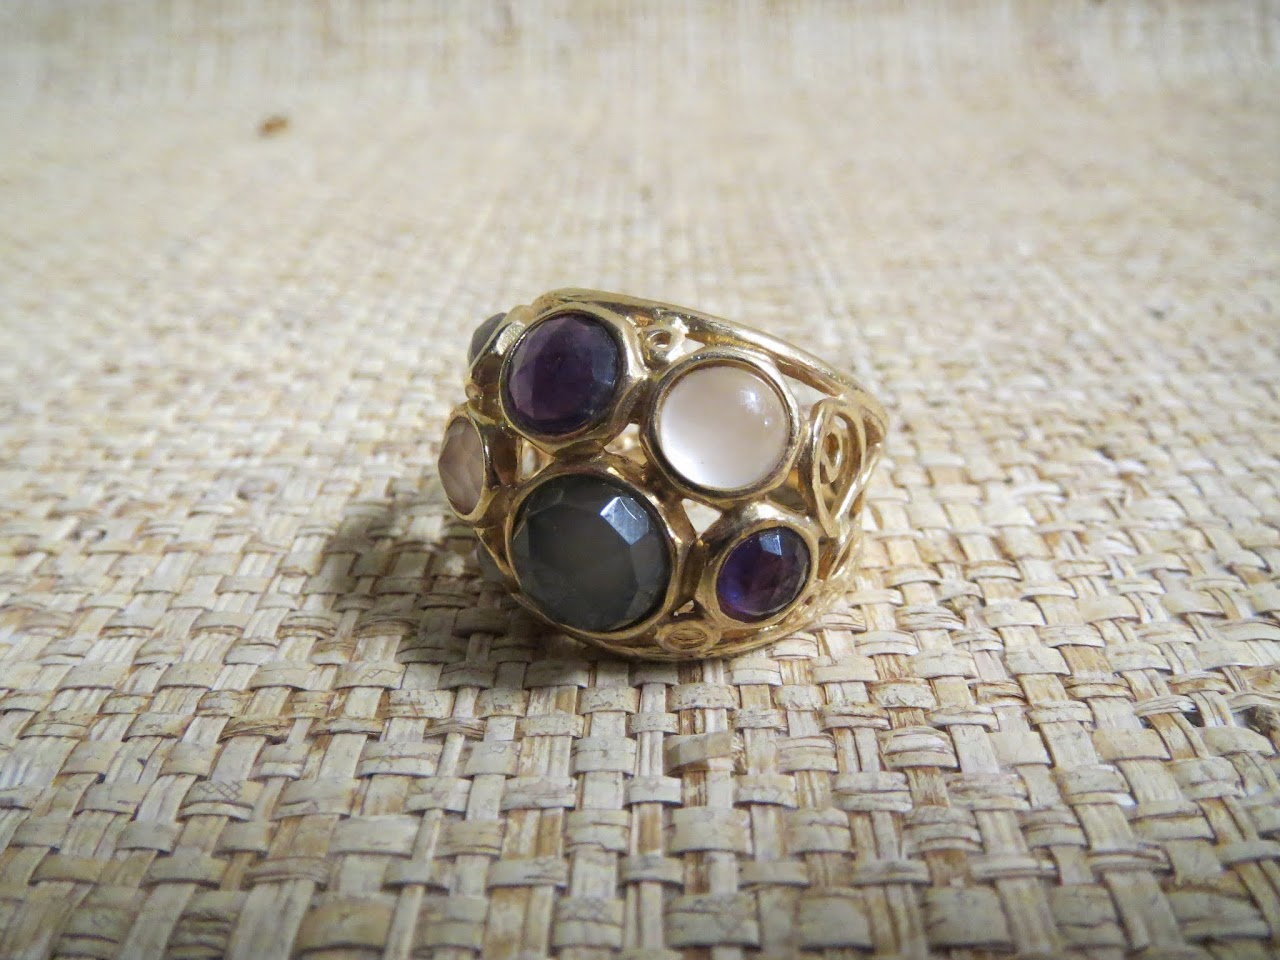 Gold-Plated Ring with Stones